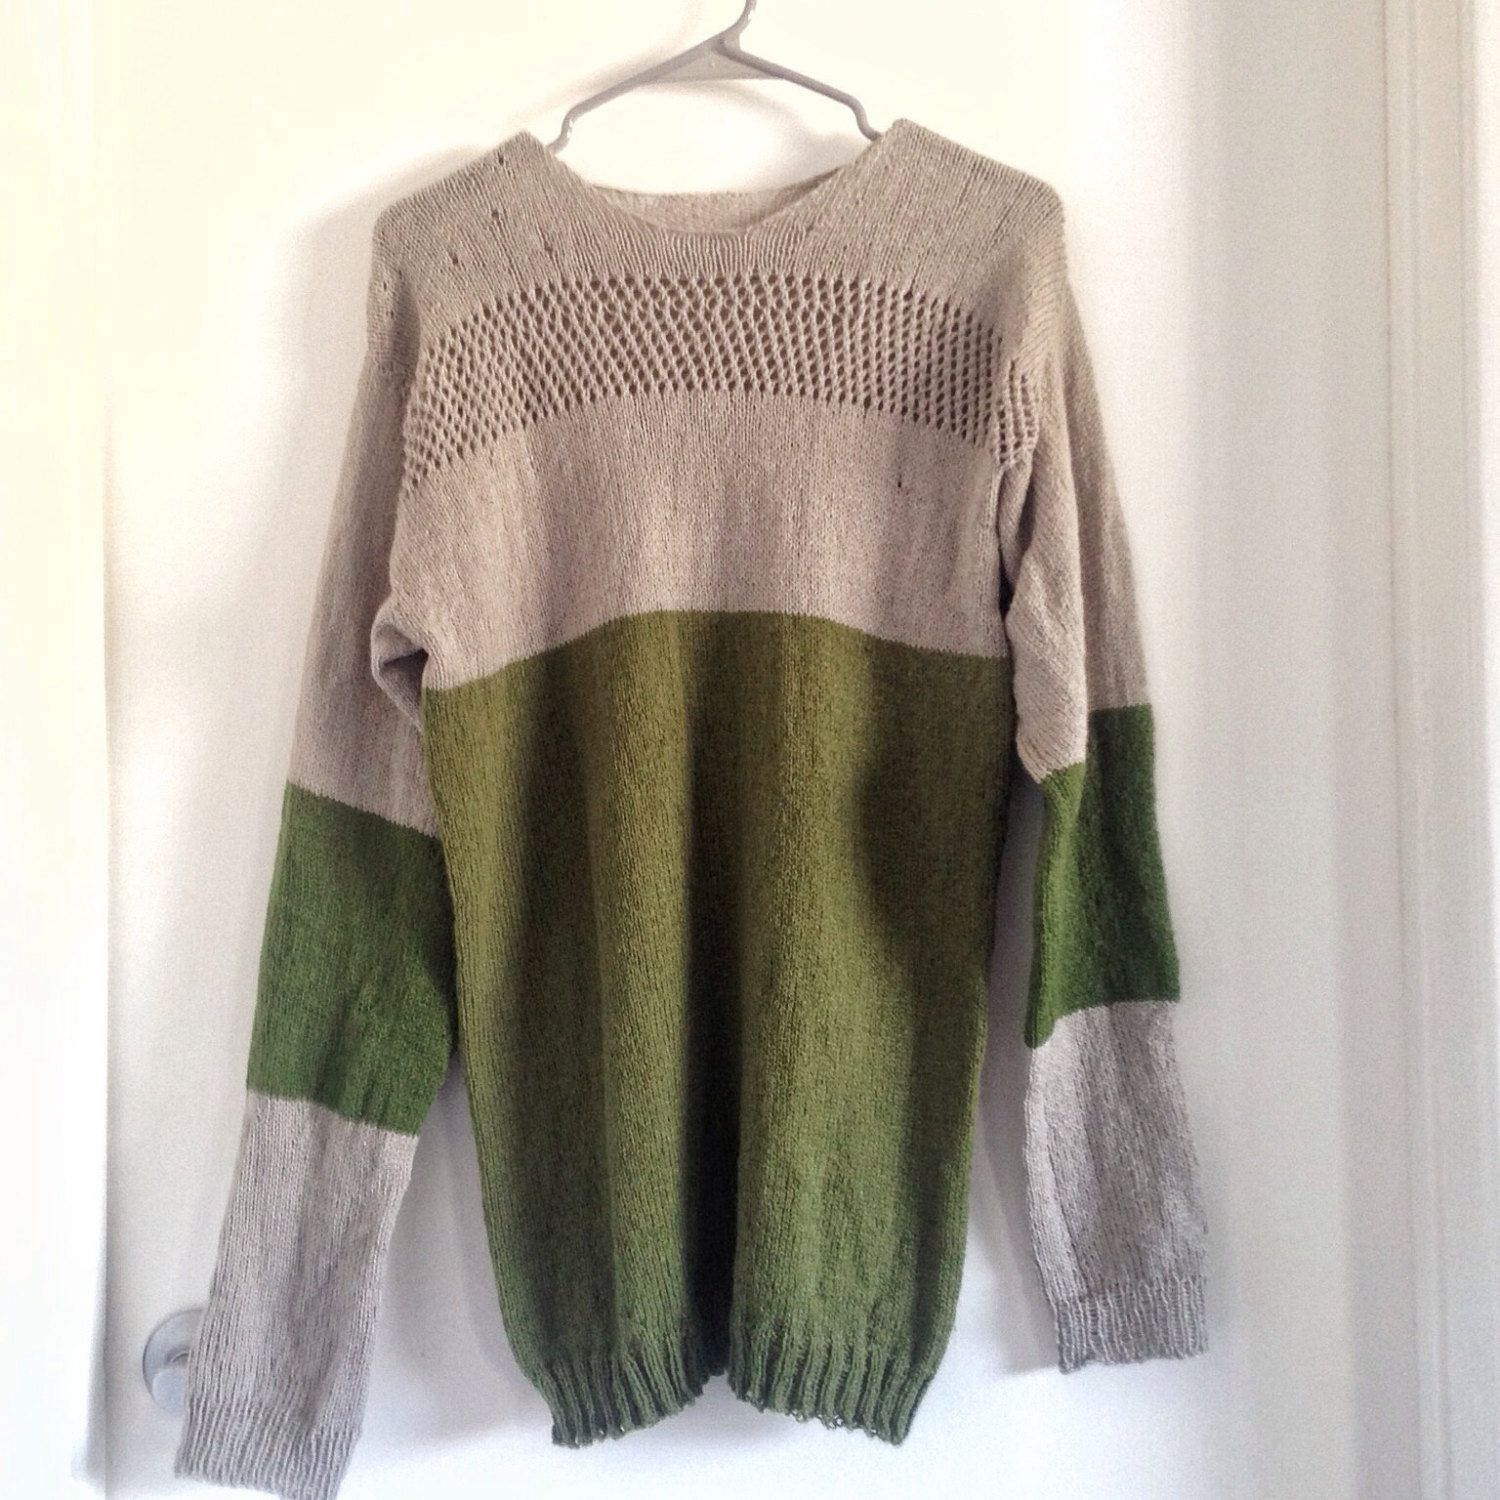 Oversized Sweater, Knit Sweater, Fine Knit Sweater, Fall Fashion ...